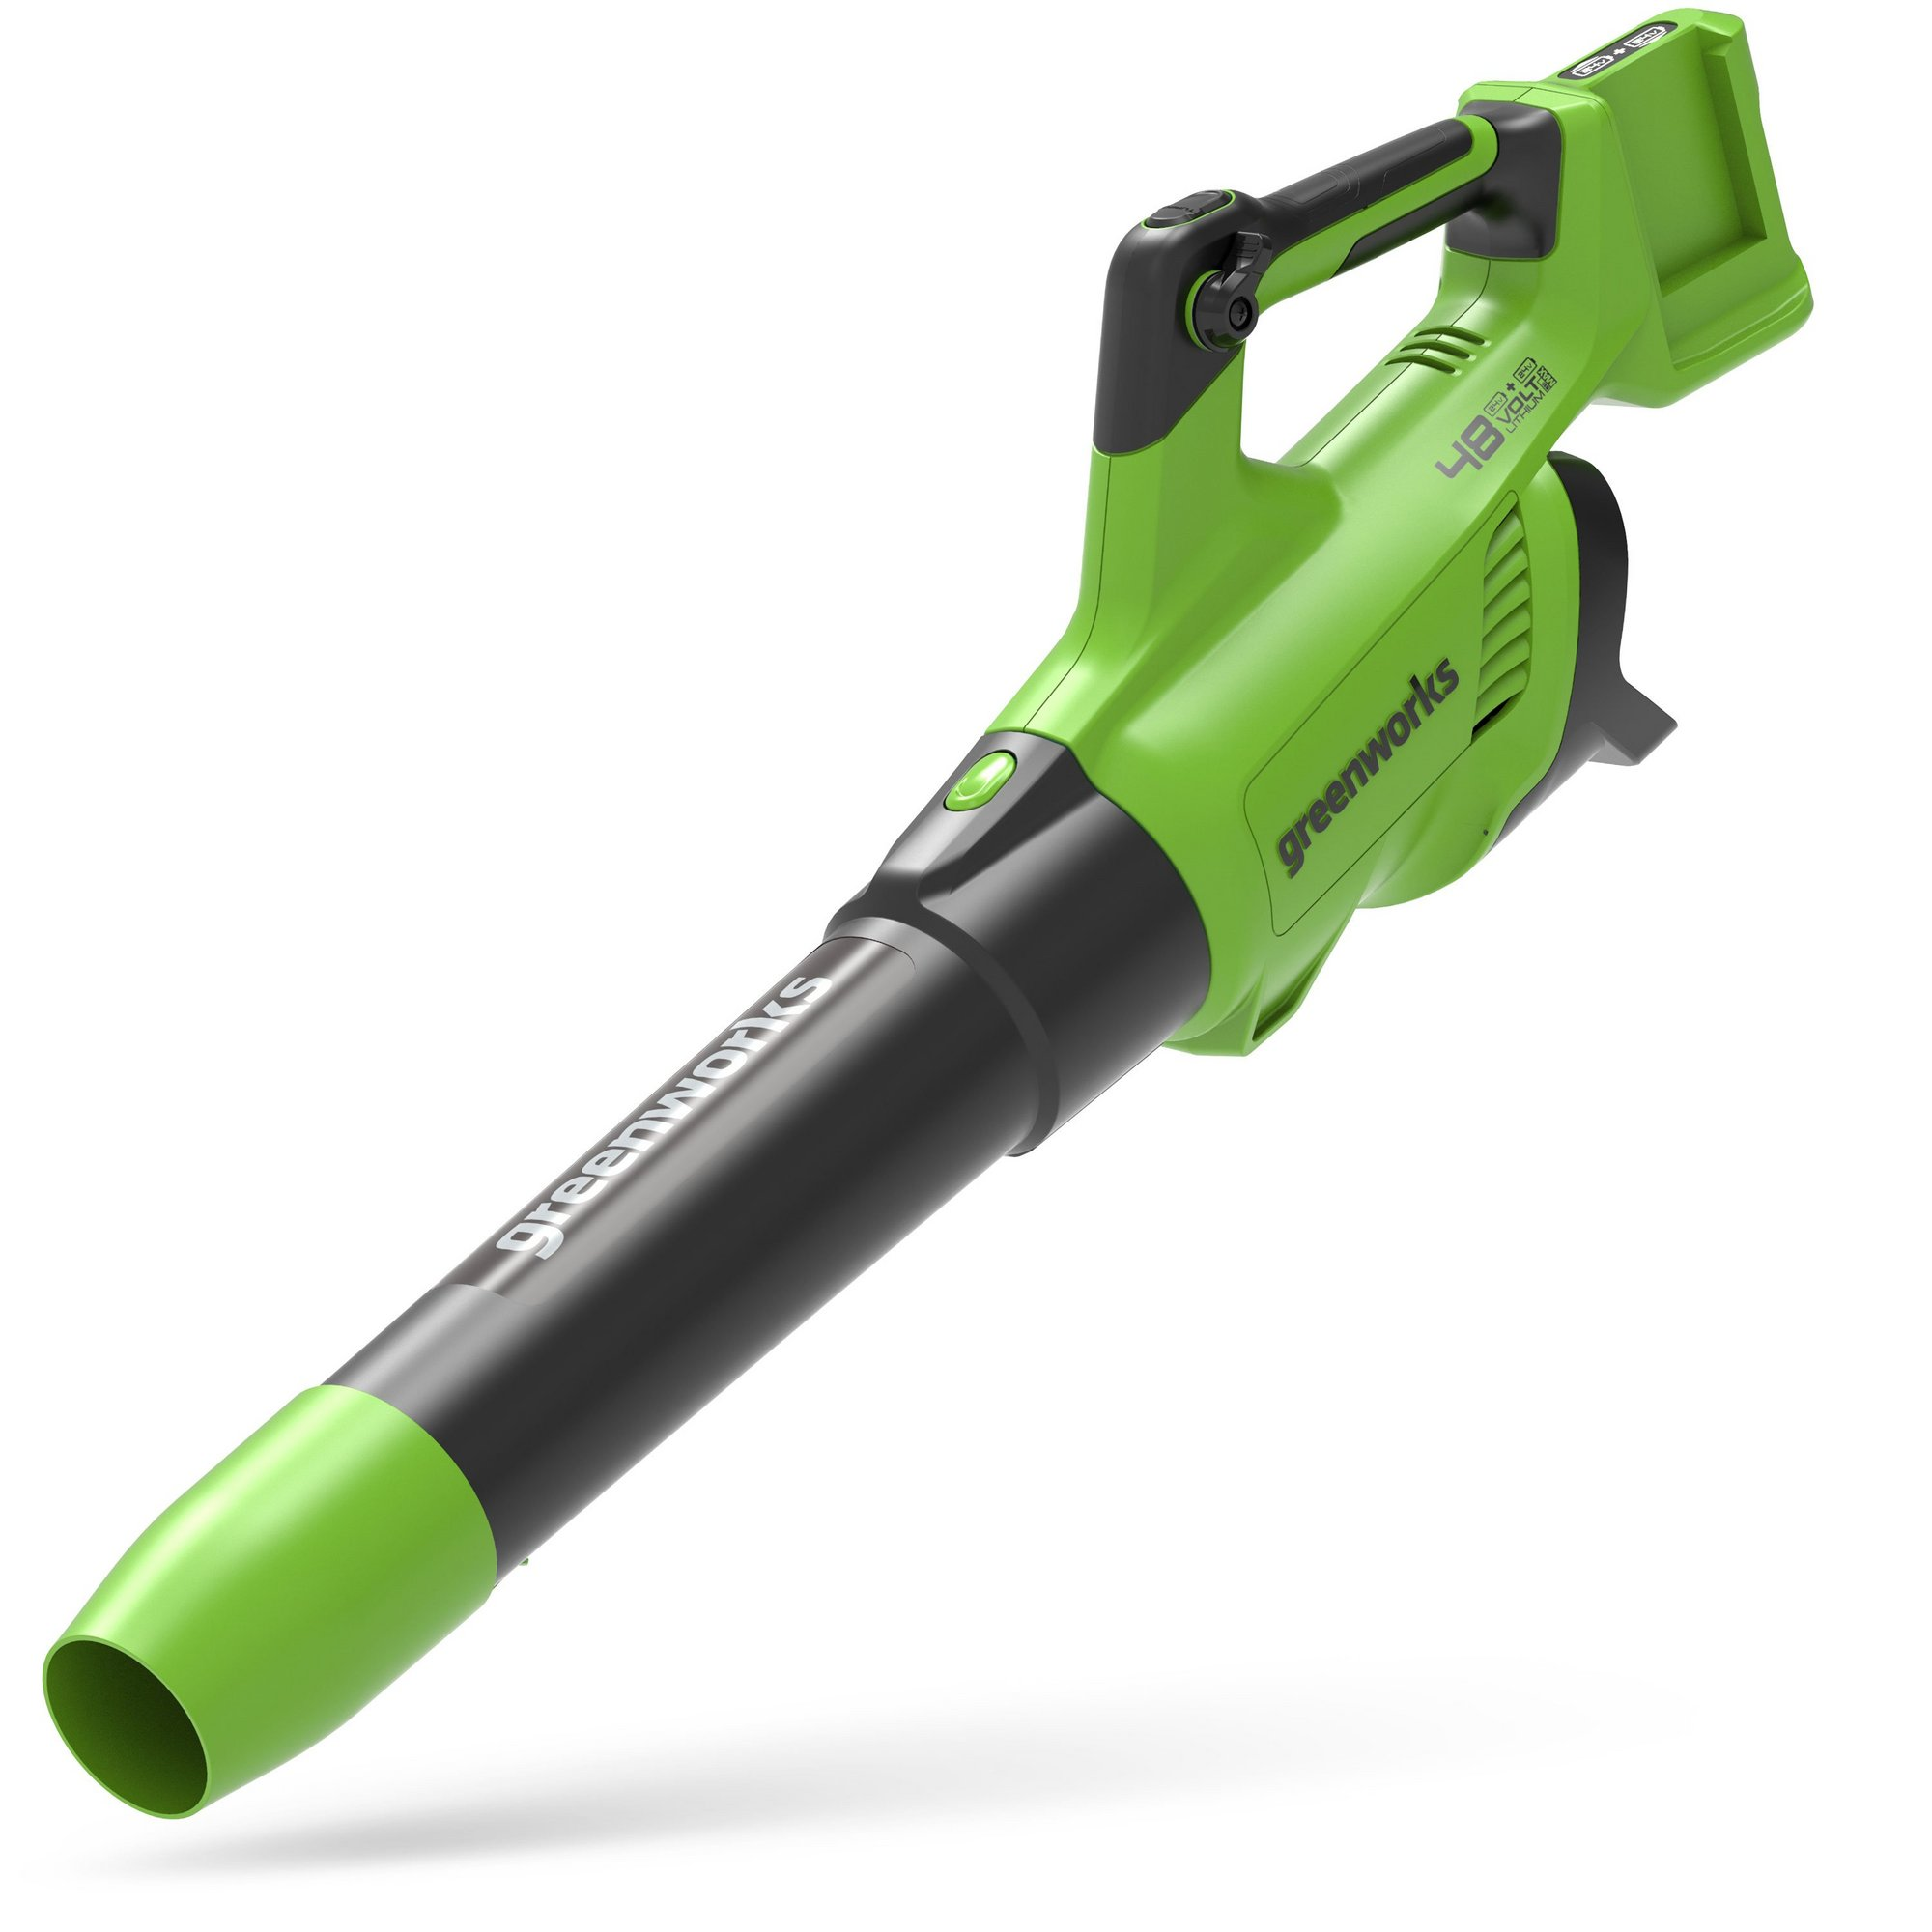 Image of Greenworks 48V Cordless Variable Speed Axial Blower (Tool Only)